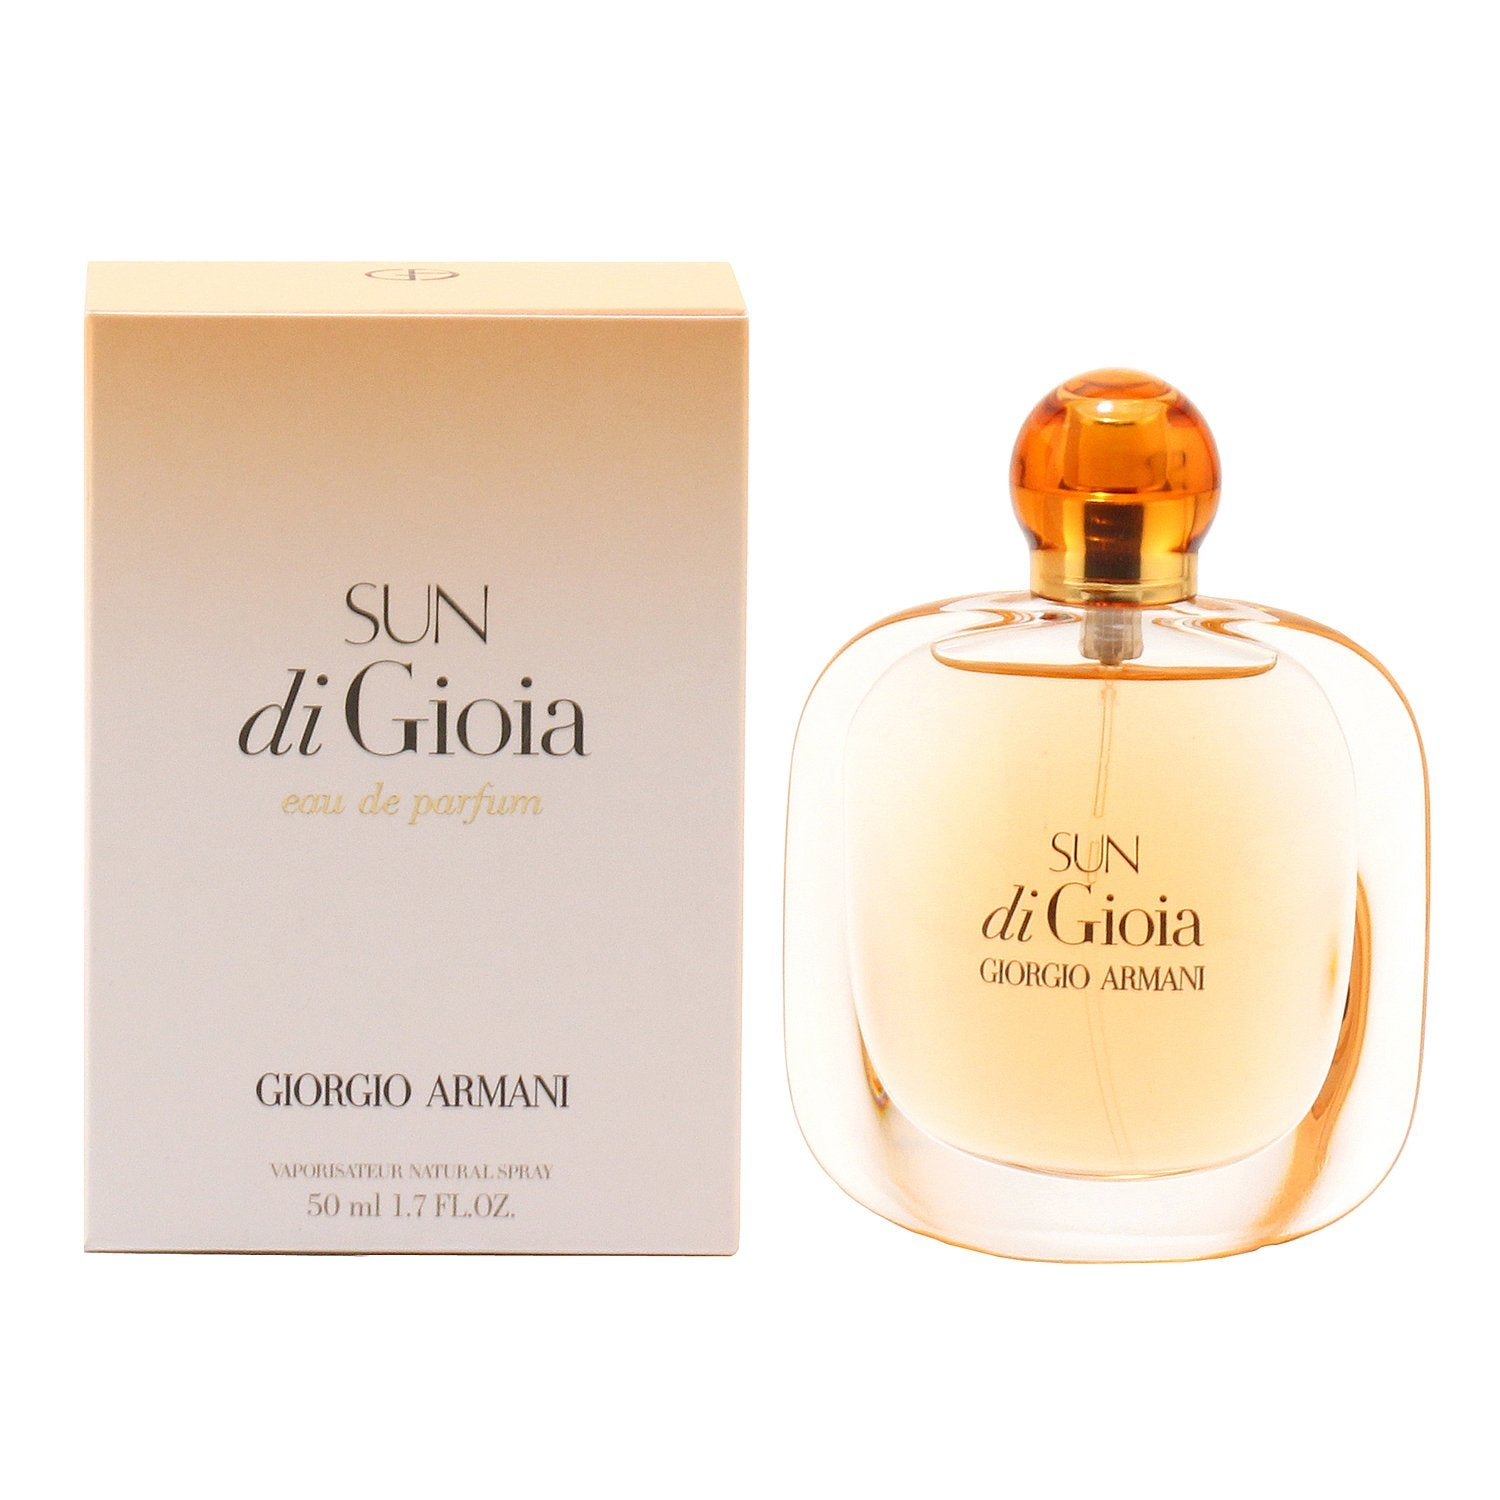 Perfume - SUN DI GIOIA FOR WOMEN BY GIORGIO ARMANI - EAU DE PARFUM SPRAY, 1.7 OZ